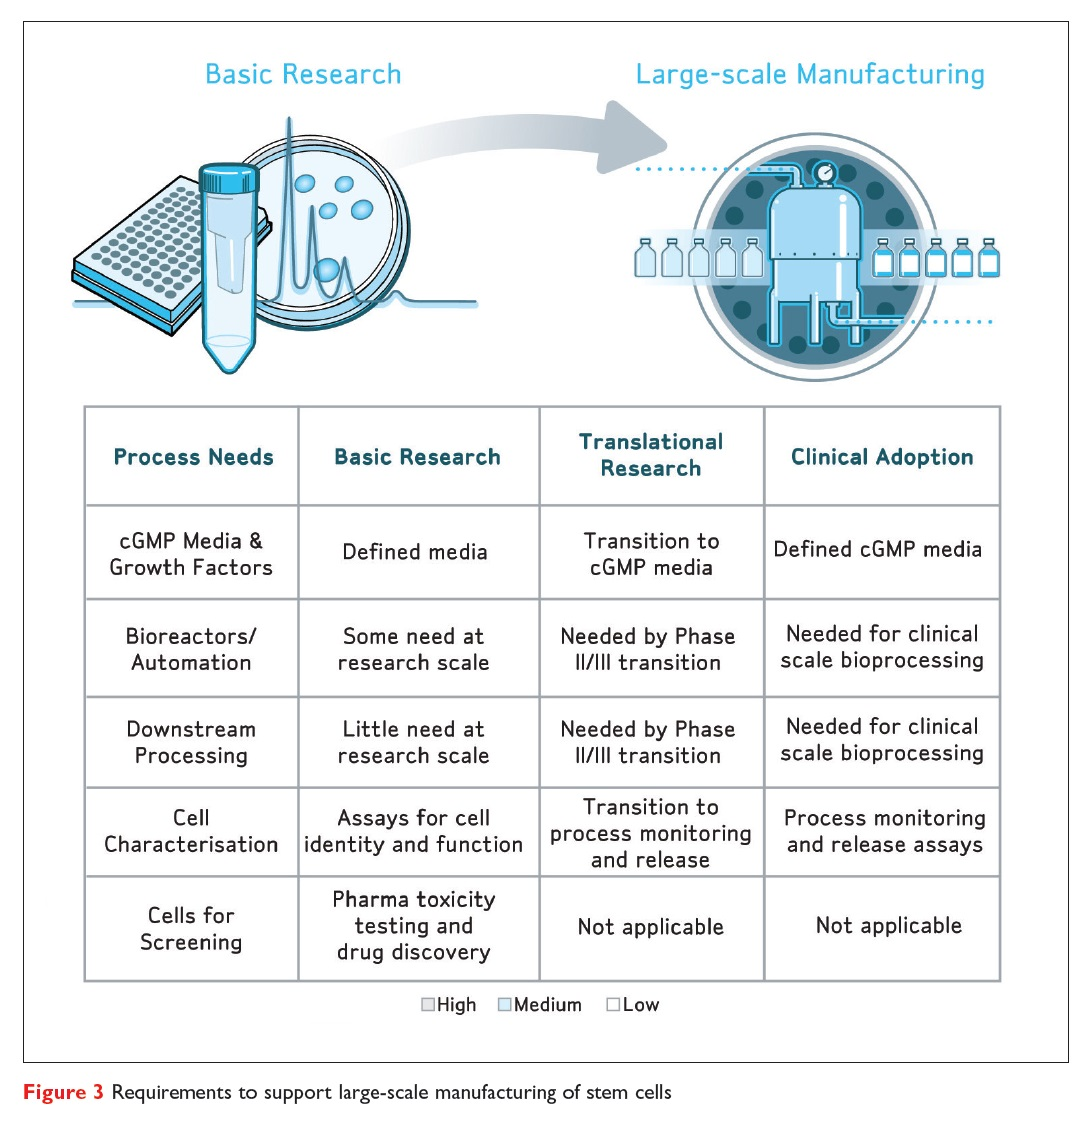 Figure 3 Requirements to support large-scale manufacturing of stem cells